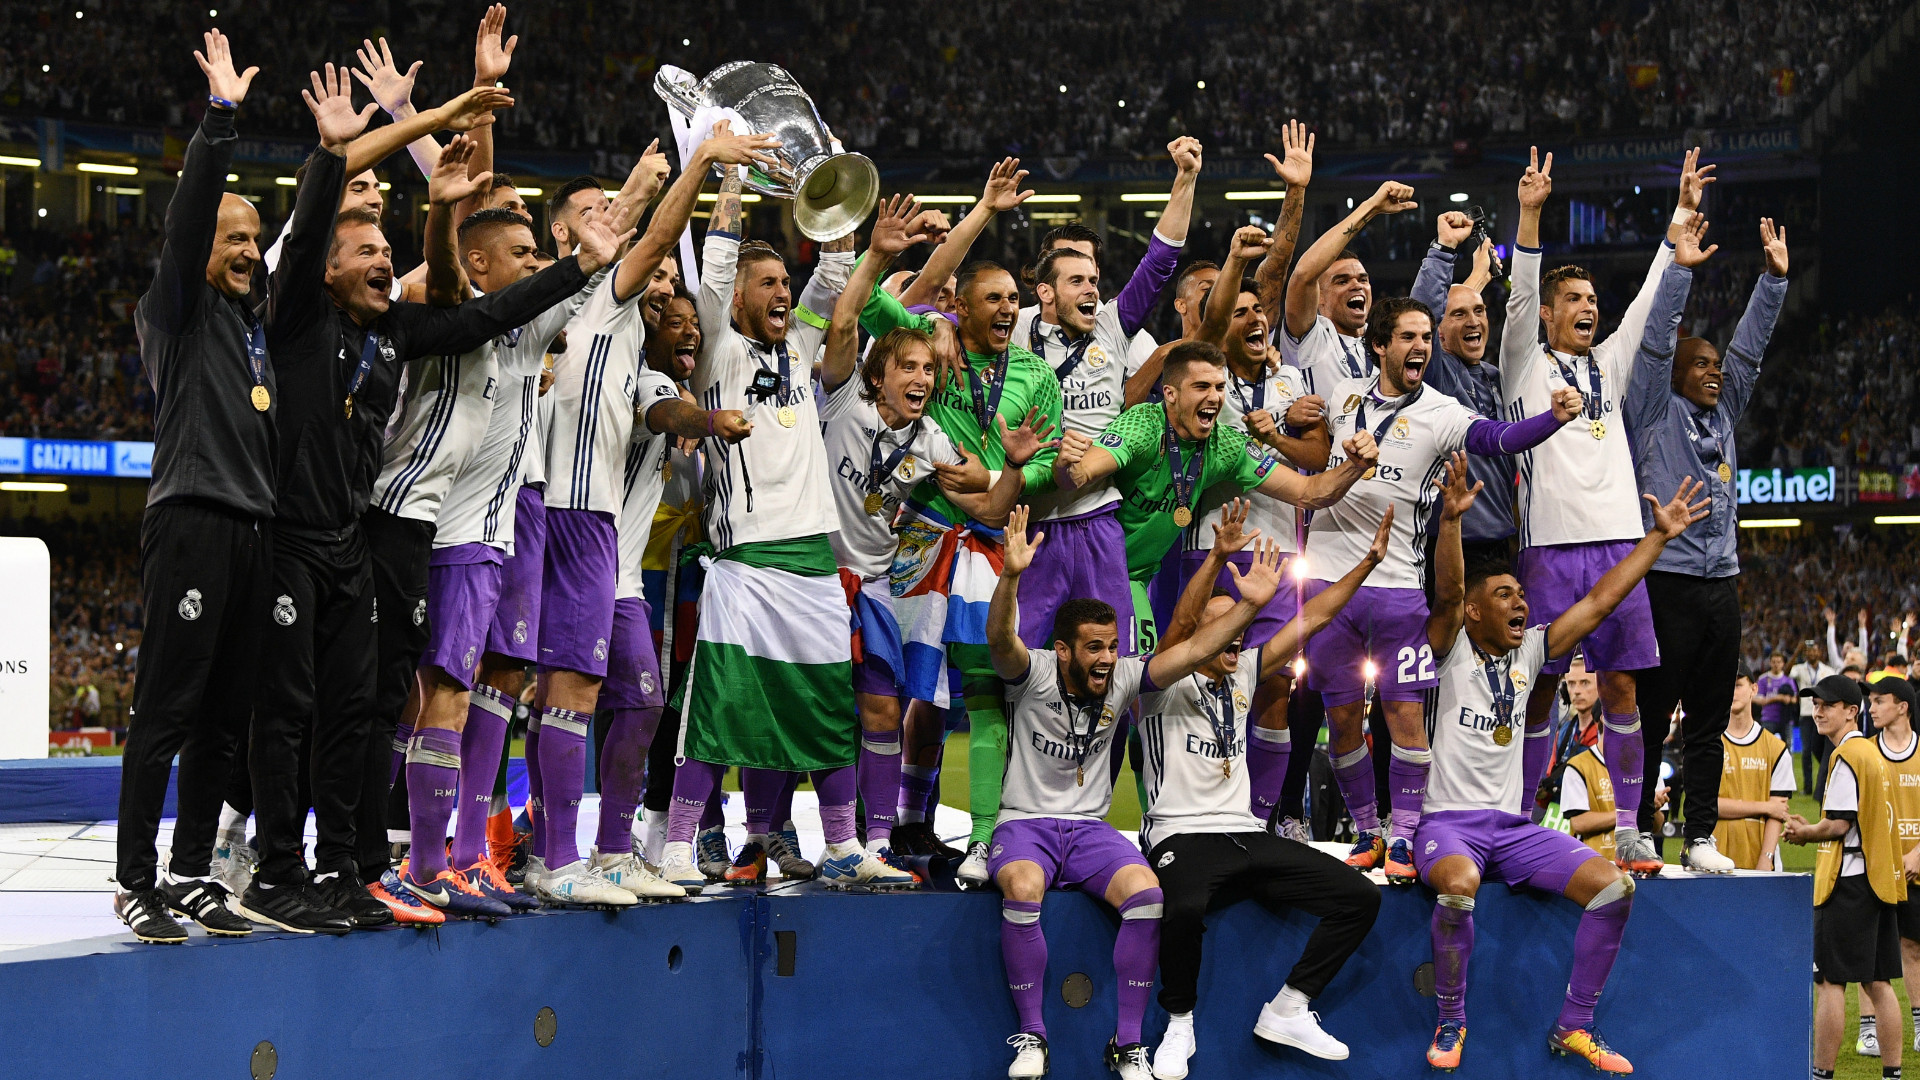 Res: 1920x1080, Real Madrid players celebrating Champions League win 03062017